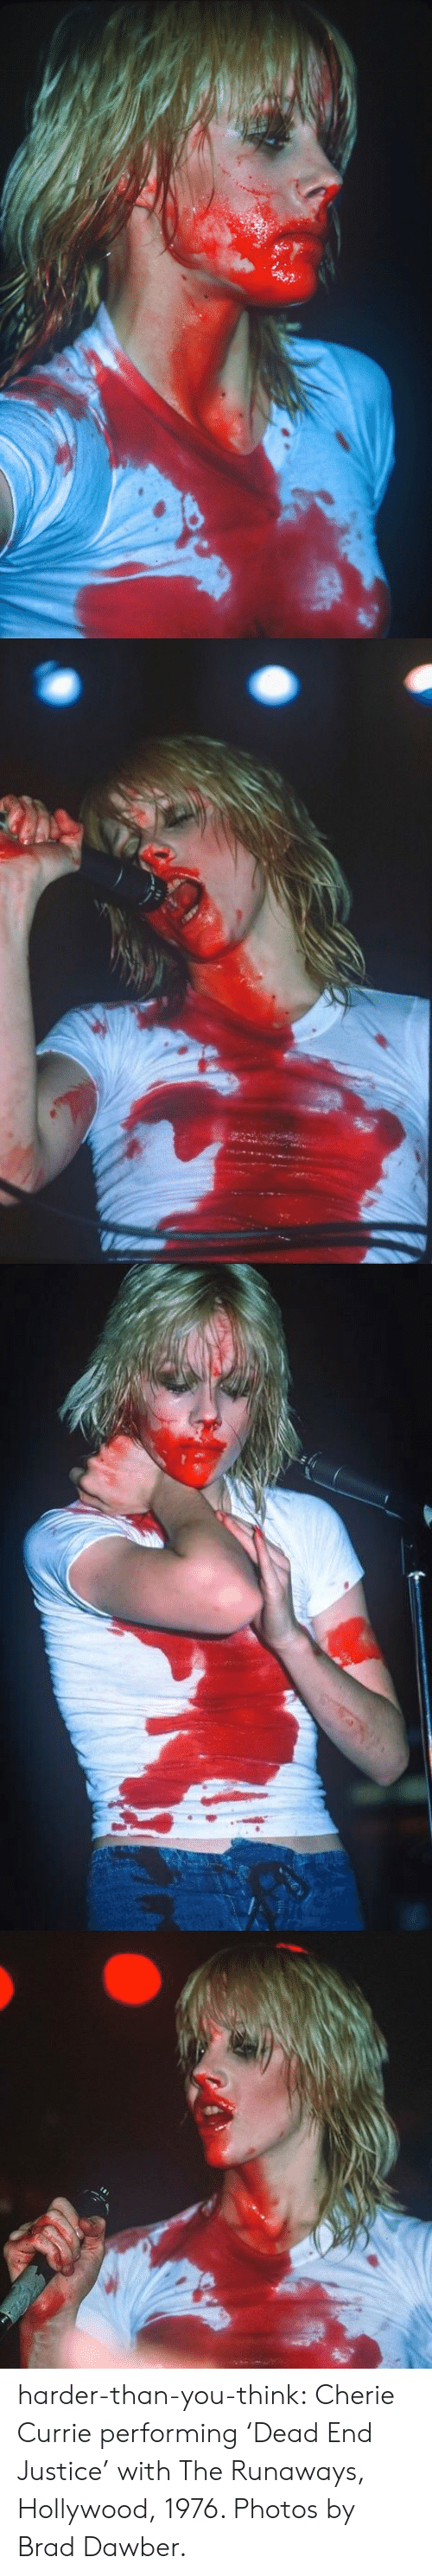 Tumblr, Blog, and Justice: harder-than-you-think:  Cherie Currie performing 'Dead End Justice' with The Runaways, Hollywood, 1976. Photos by Brad Dawber.